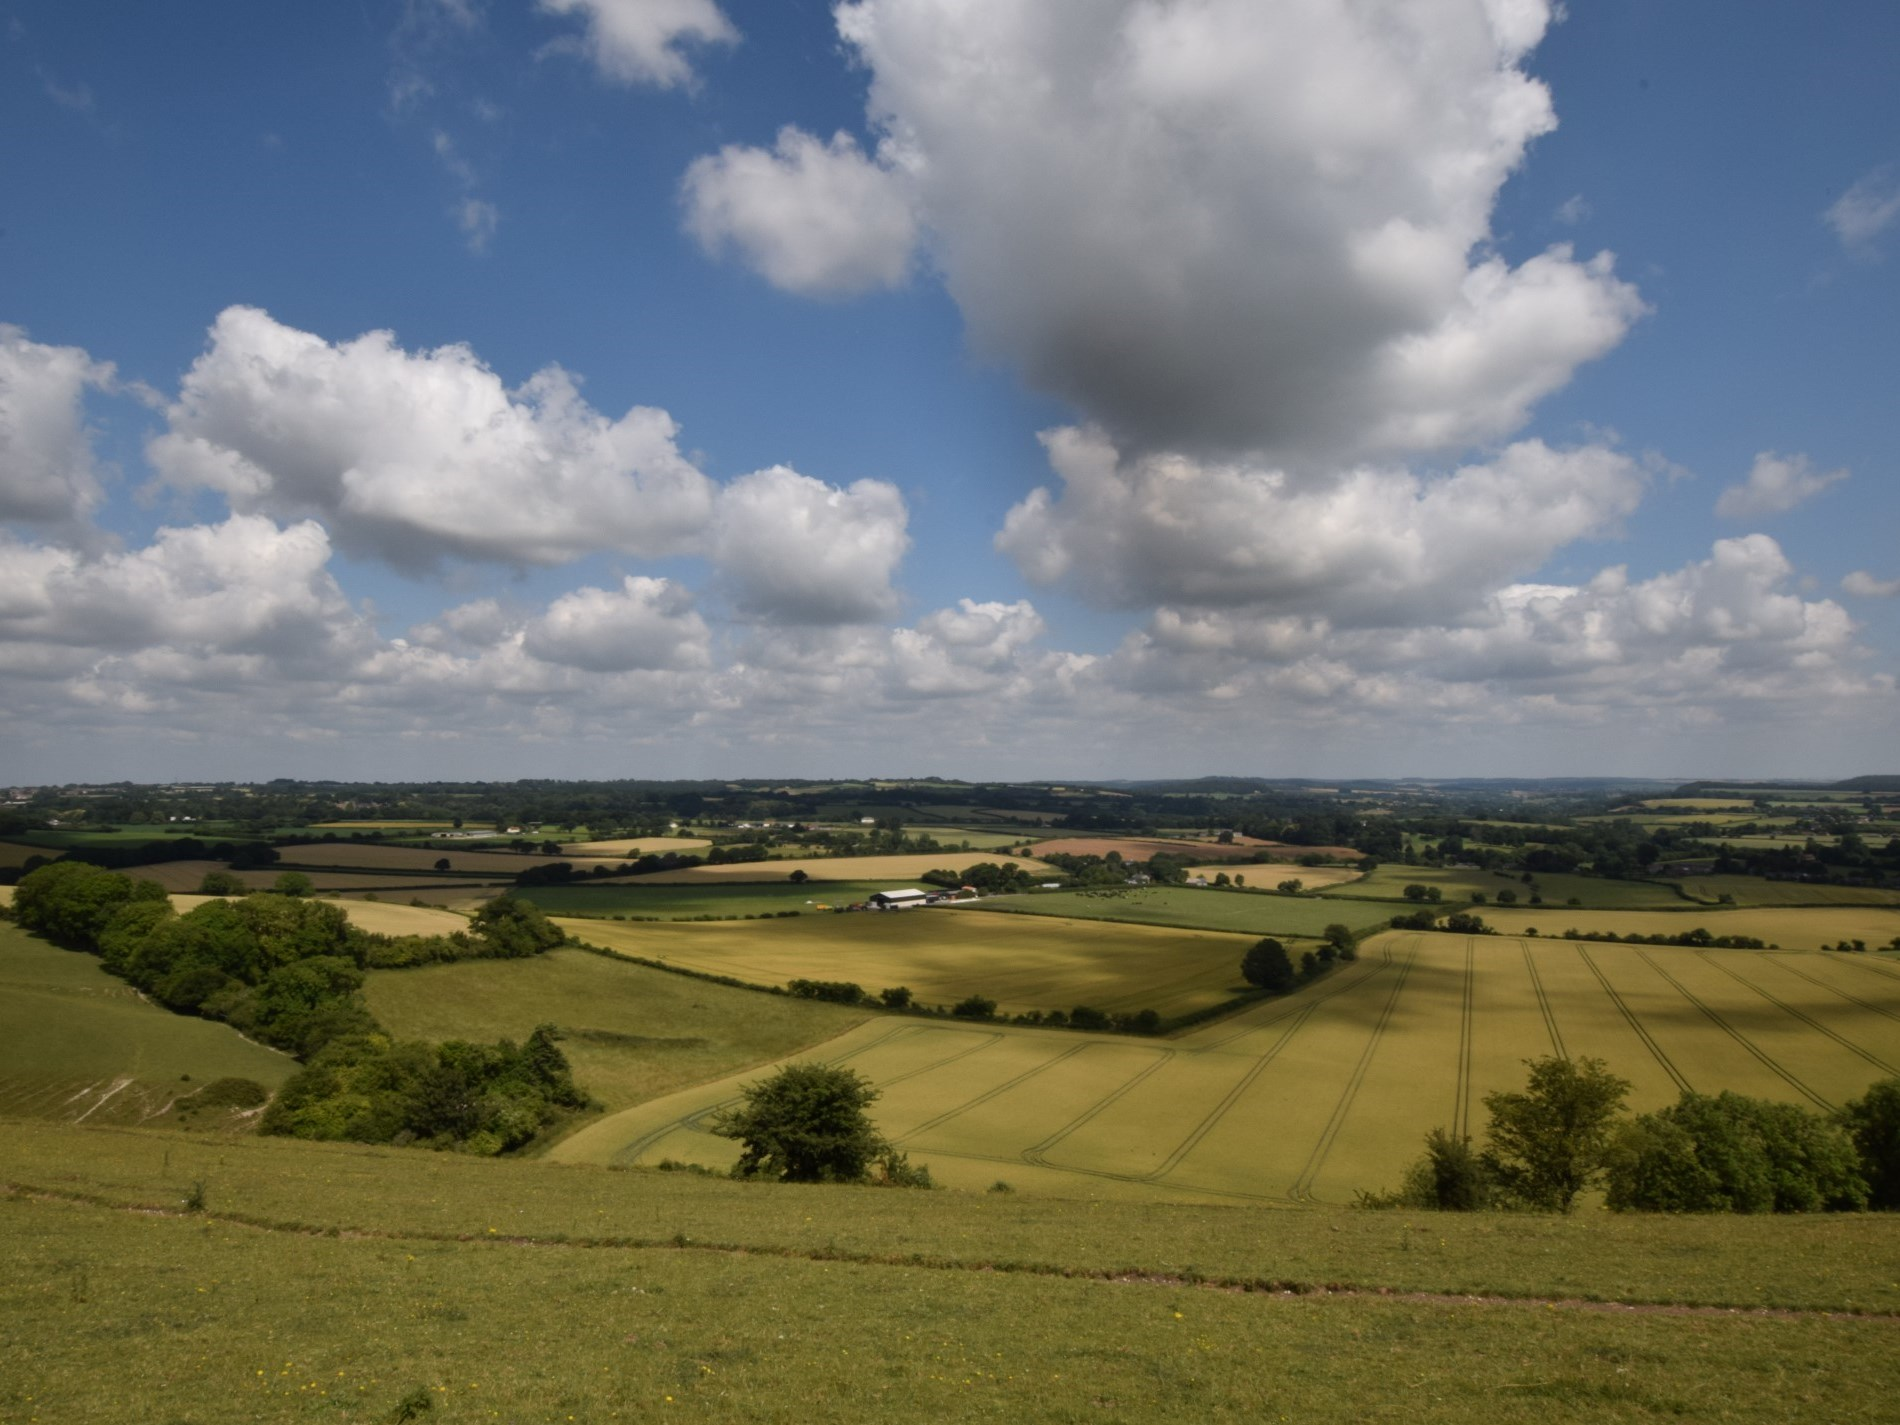 Take a trip to nearby Cranborne Chase and admire the incredible scenery